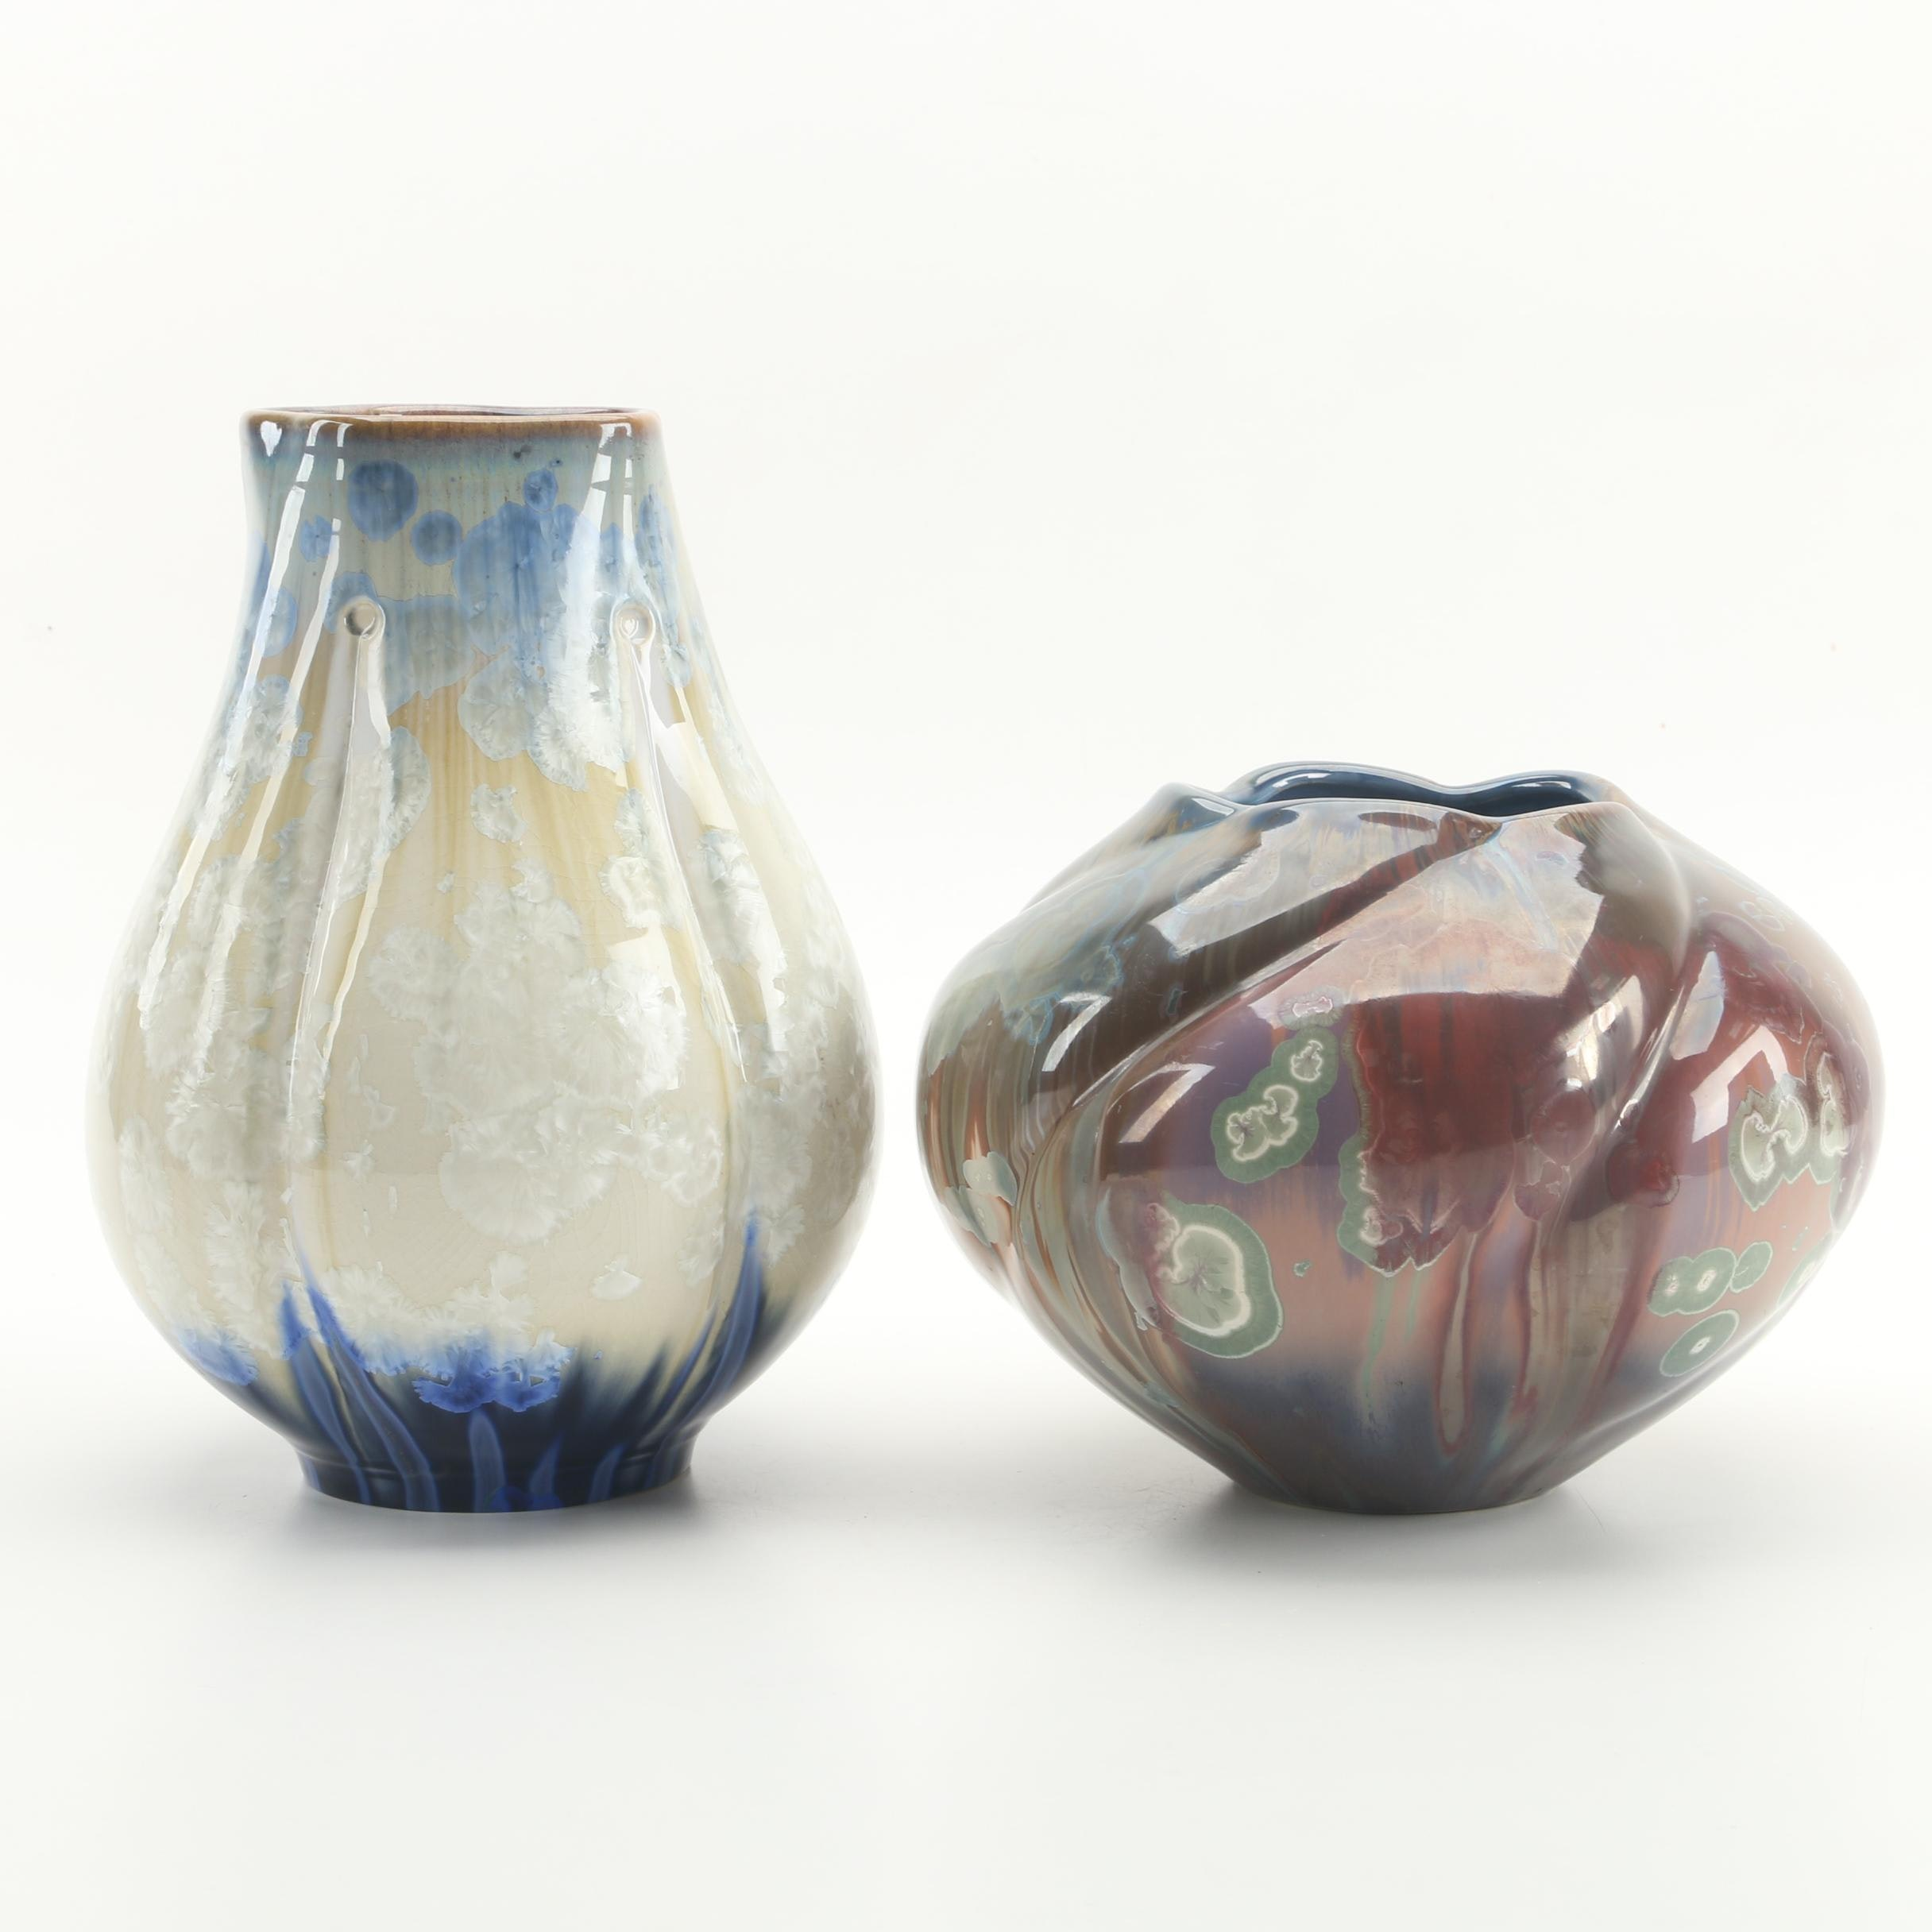 Bill Campbell Porcelain Vases with Crystalline Glaze